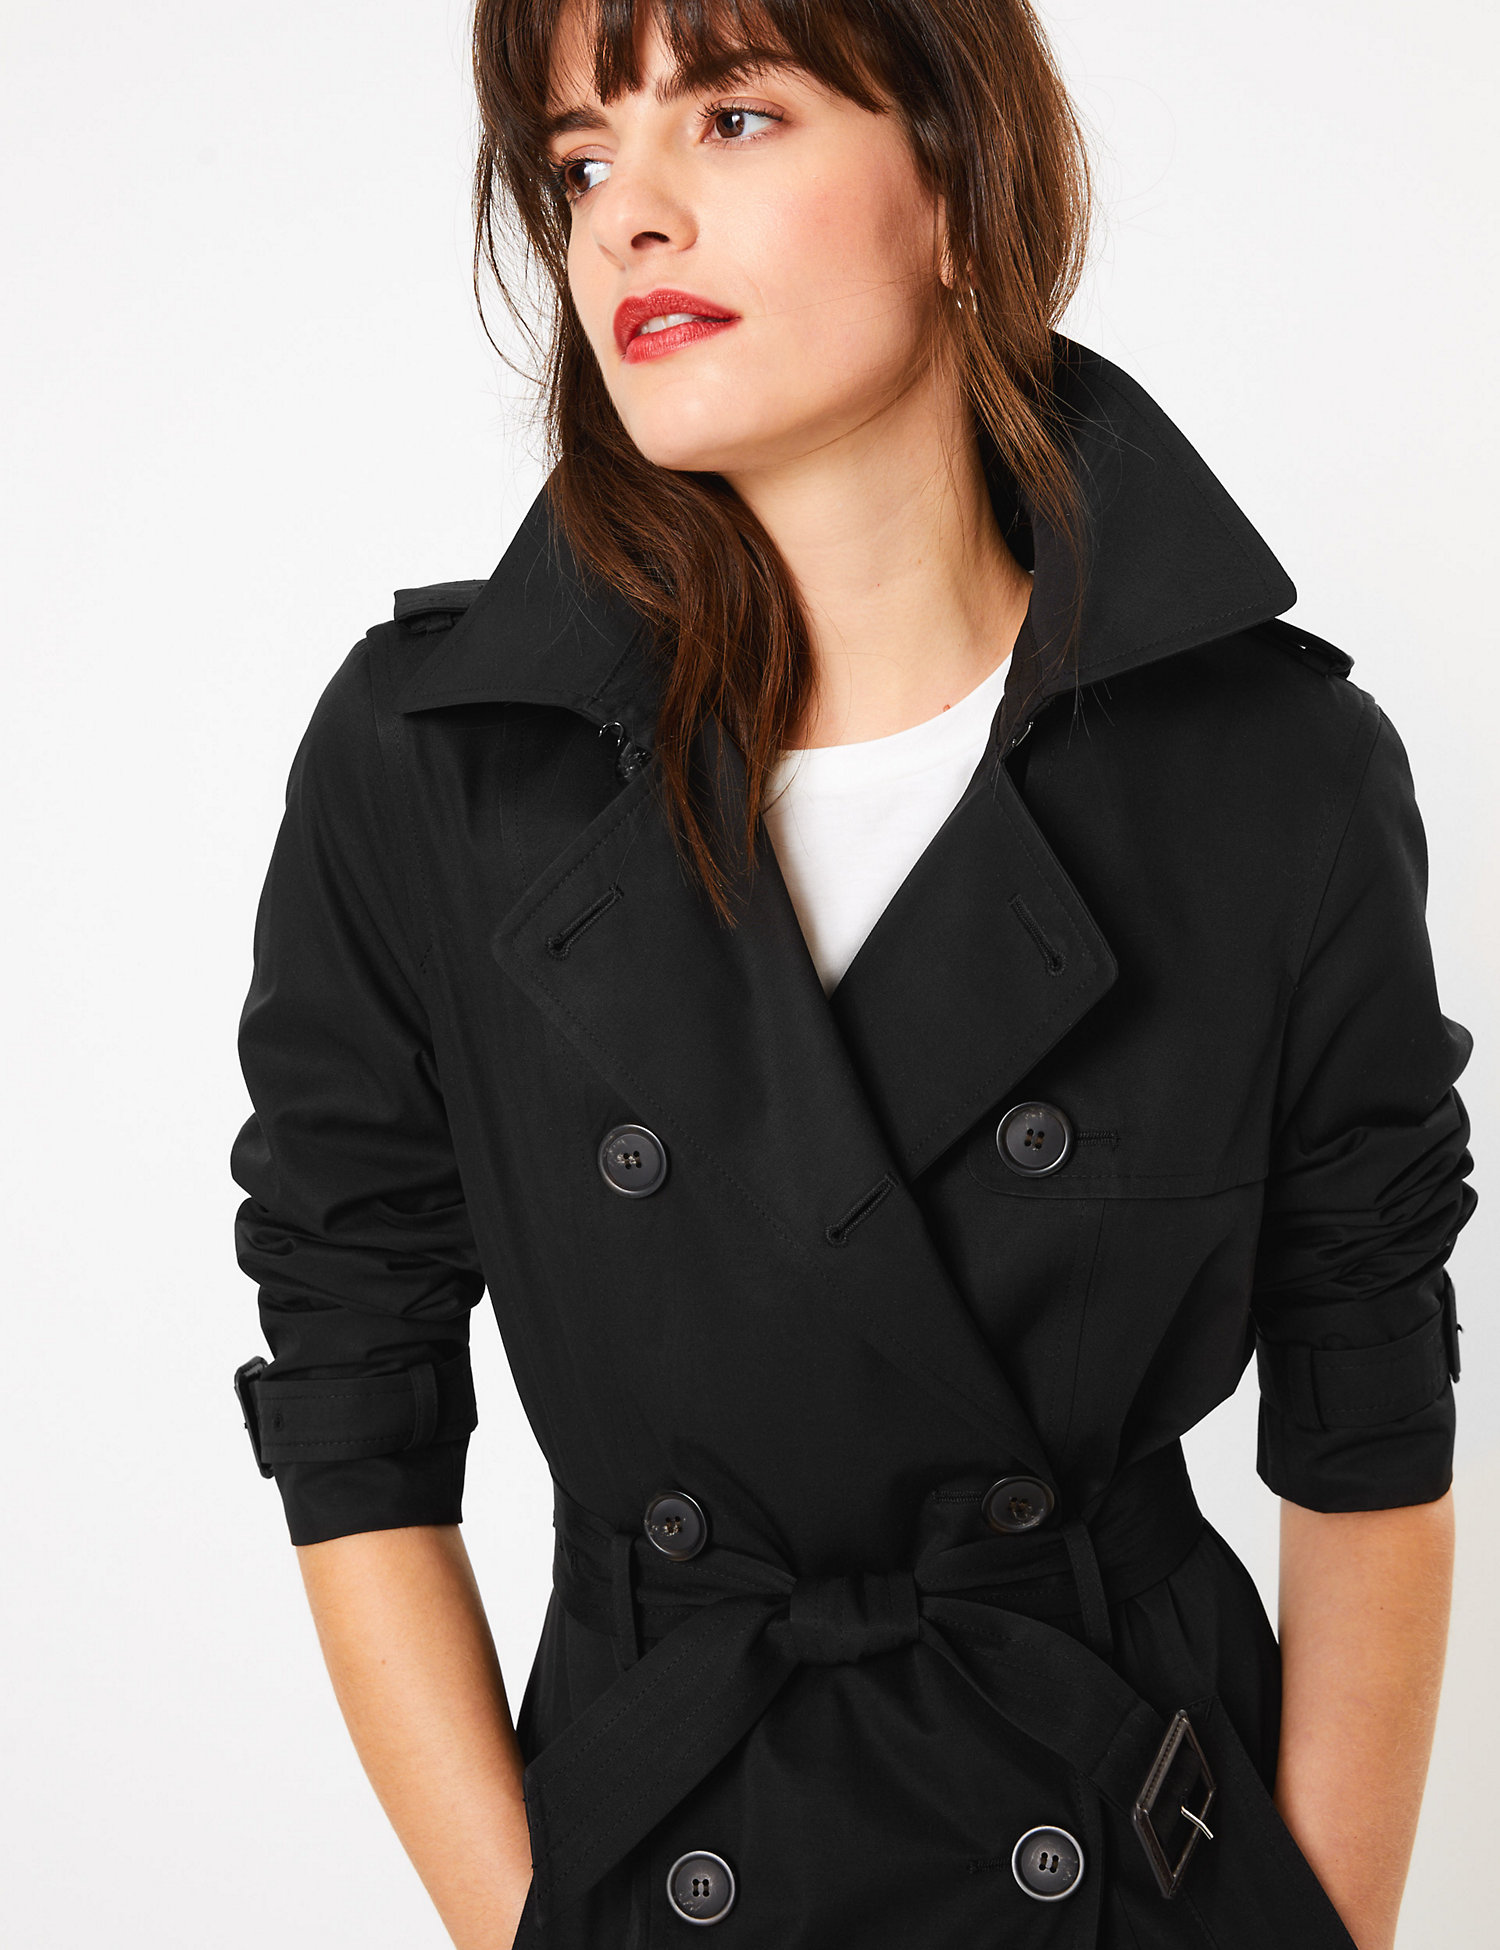 M&S Double Breasted Trench Coat £38.50